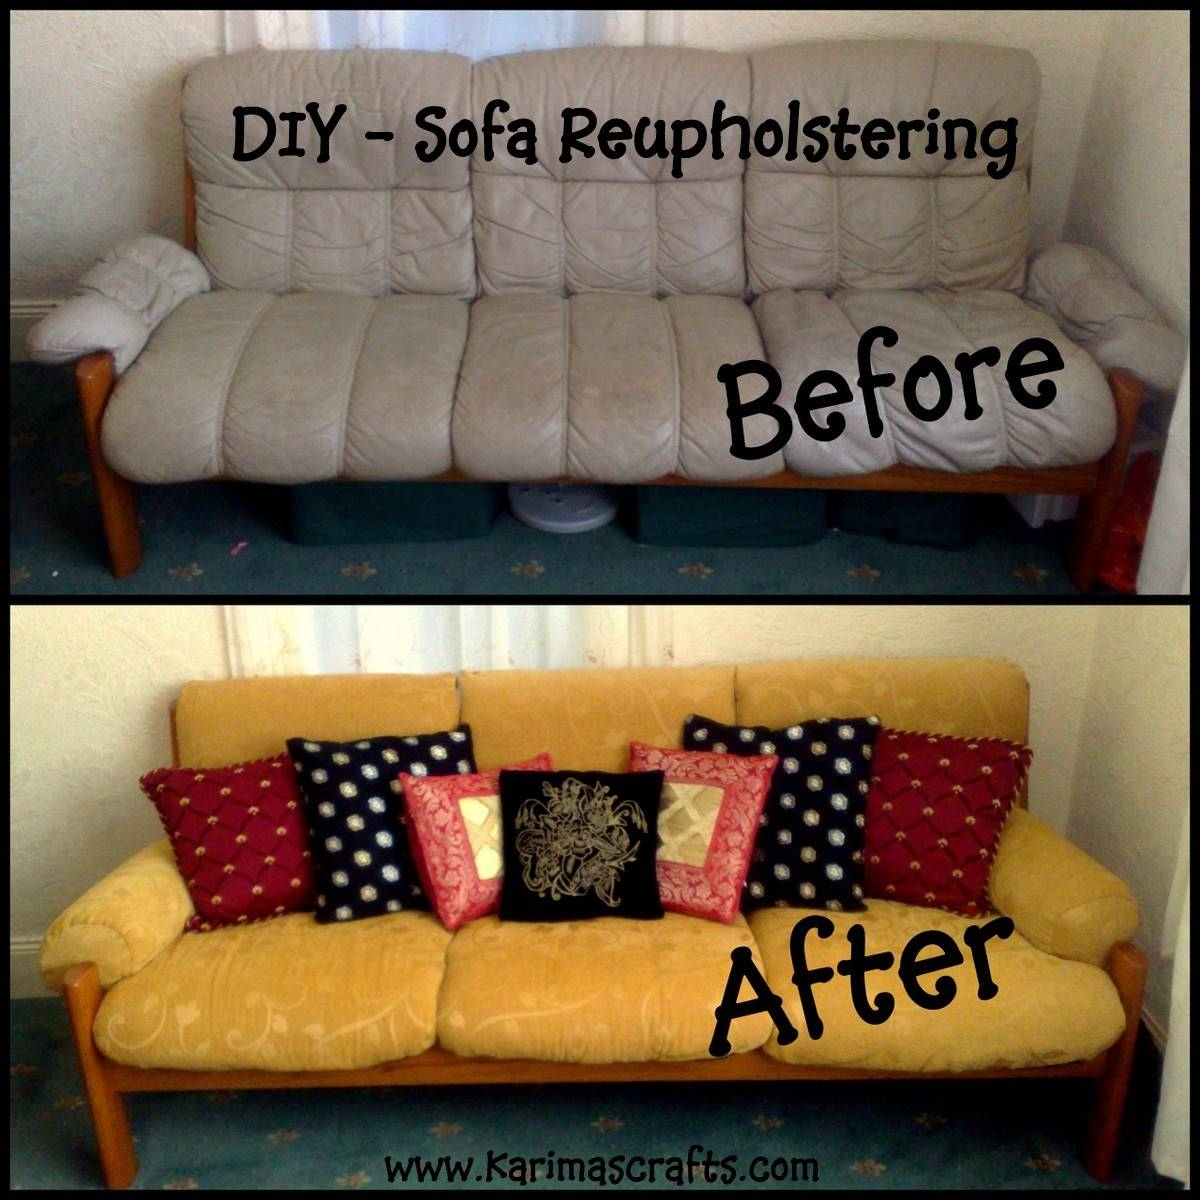 Karima's Crafts: Reupholstering A Sofa - My Mini Tutorial throughout Reupholster Sofas Cushions (Image 11 of 15)